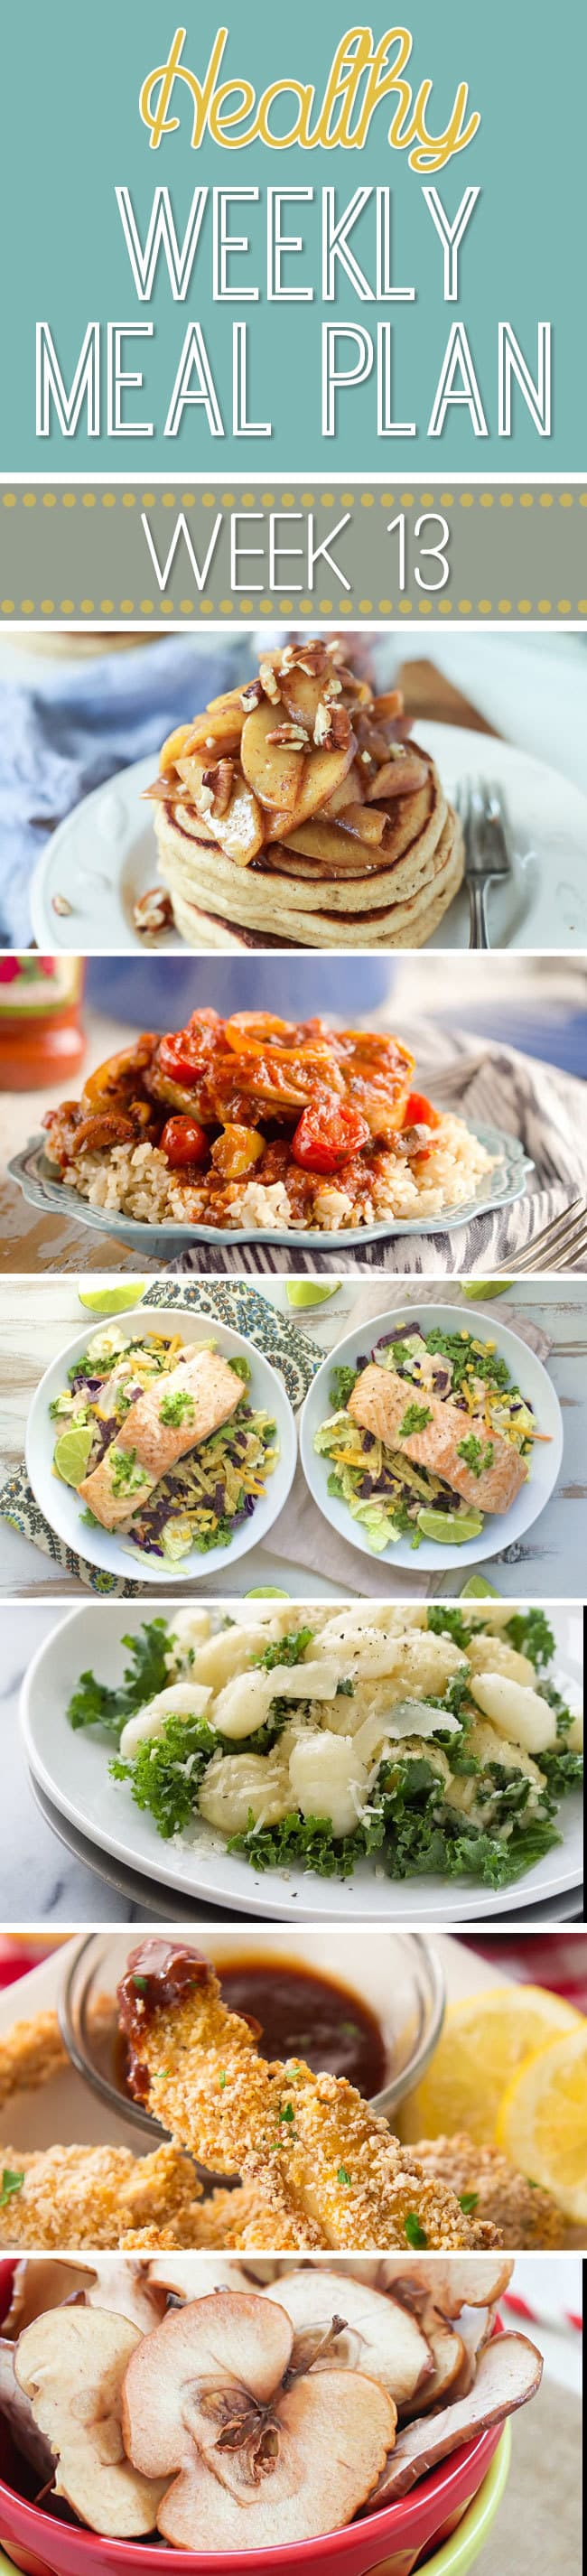 Healthy Meal Plan Week #13 - yummy breakfast, lunch, dinner, snack and dessert recipes for you to make this week!